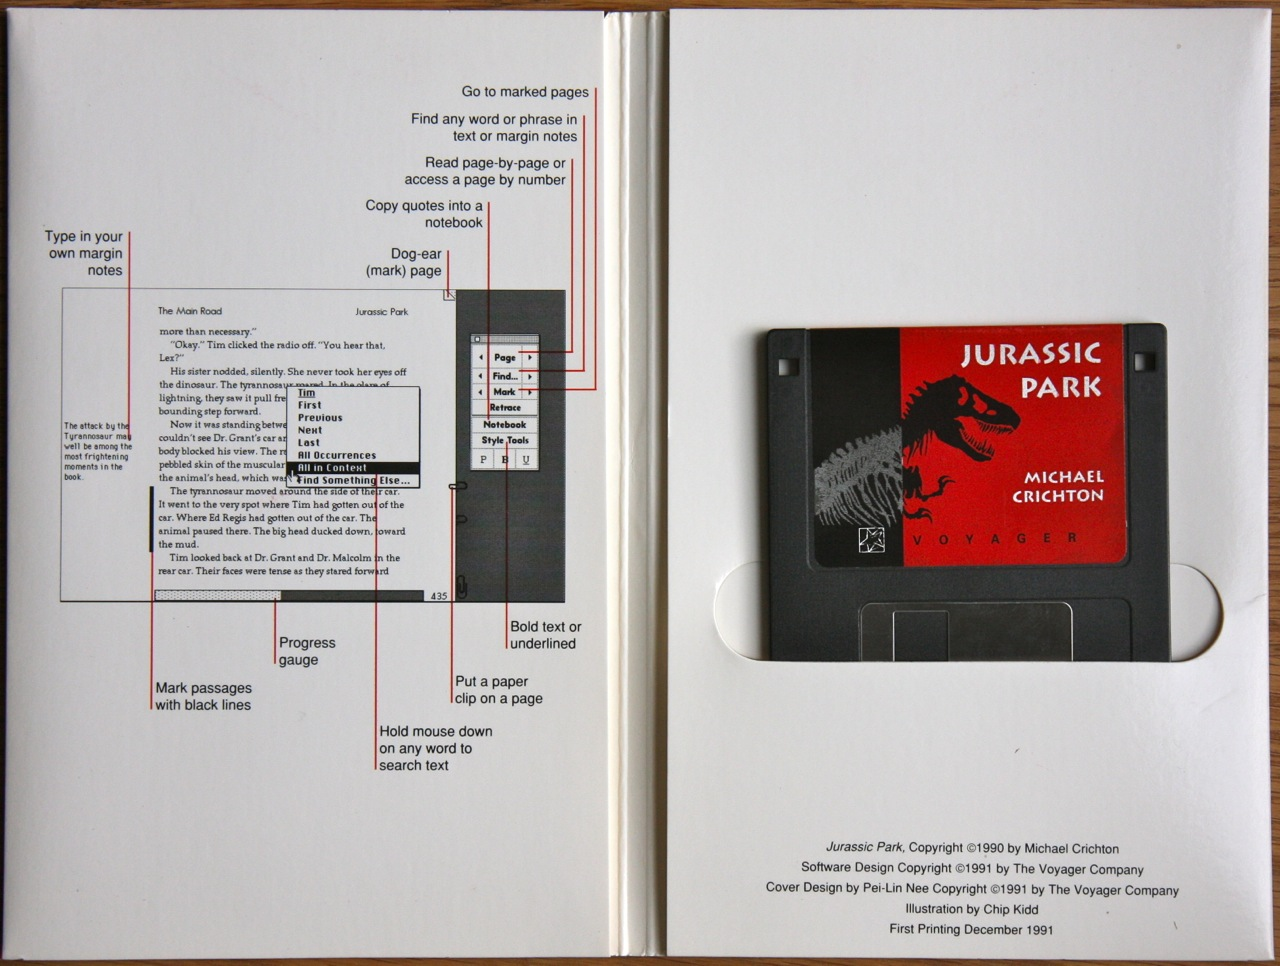 Fig. 9: Jurassic Park Expanded Book, Voyager Company, 1991. Source: http://alfabravo.com/2011/08/early-ebooks-and-why-they-failed/